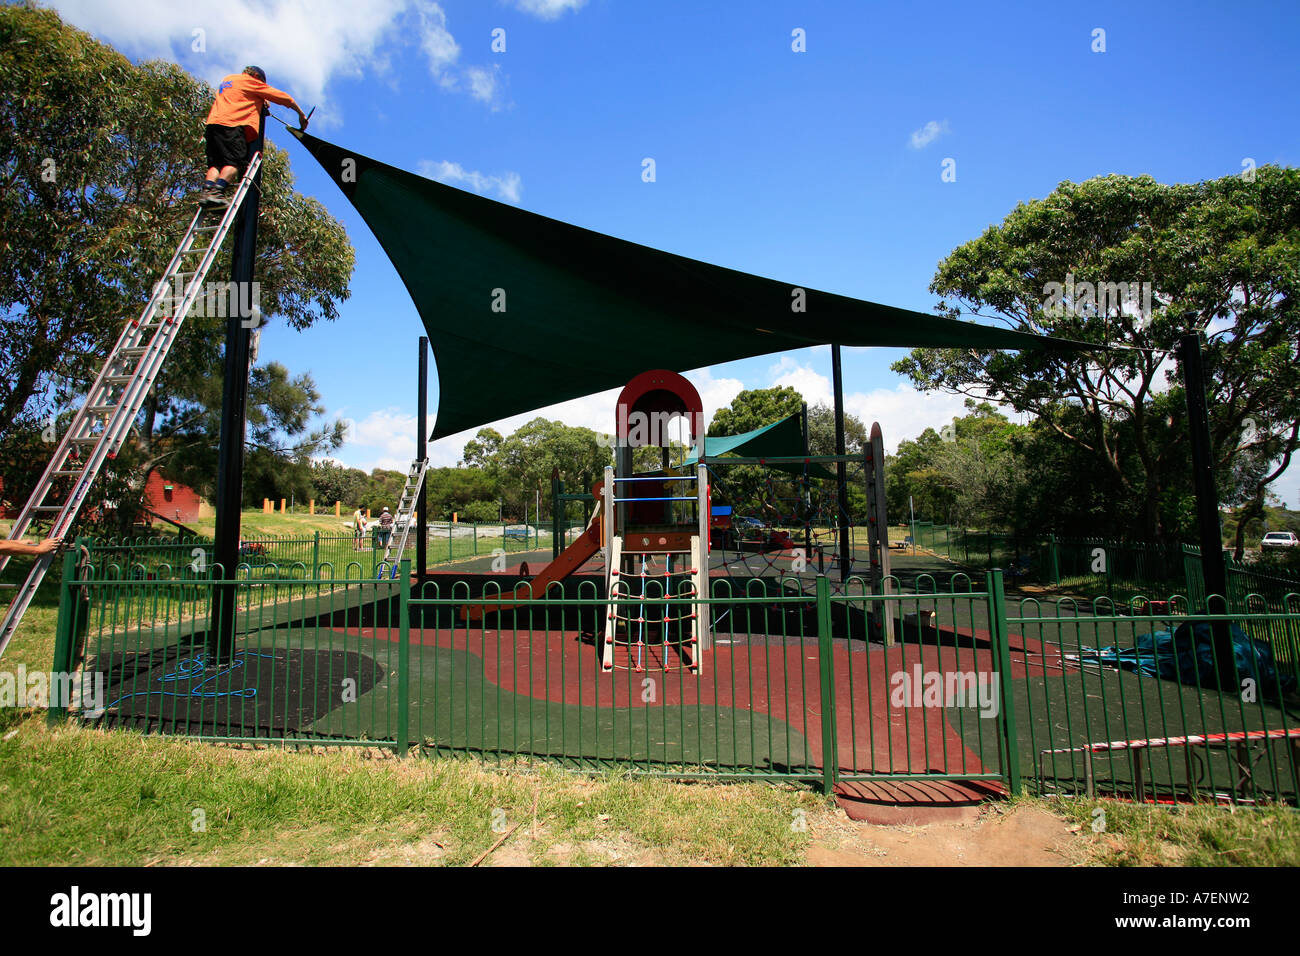 Childrens playground with sun protection screen - Stock Image